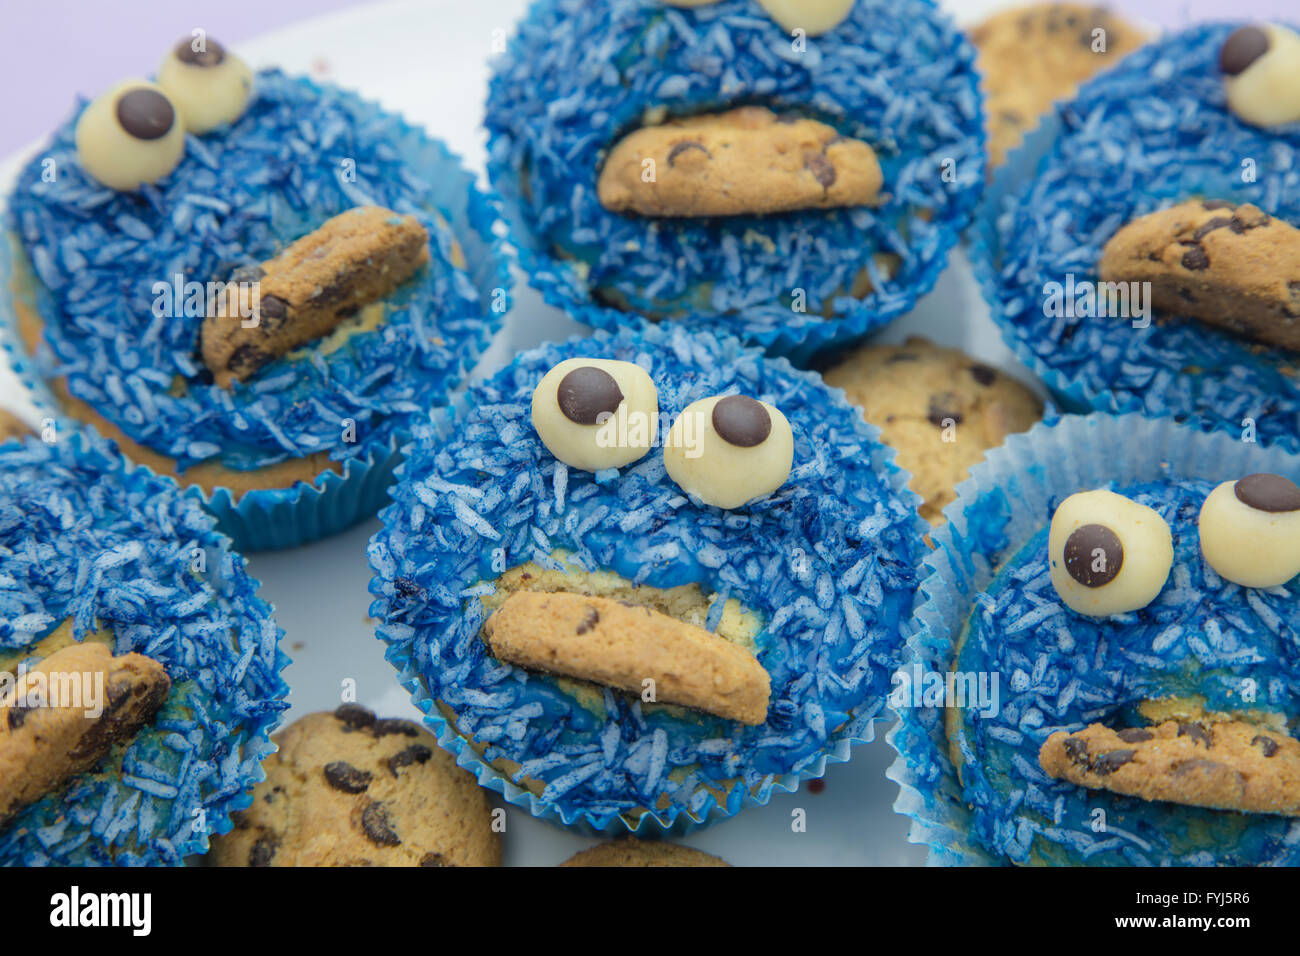 Handmade coconut muffins with chocolate cookies - Stock Image